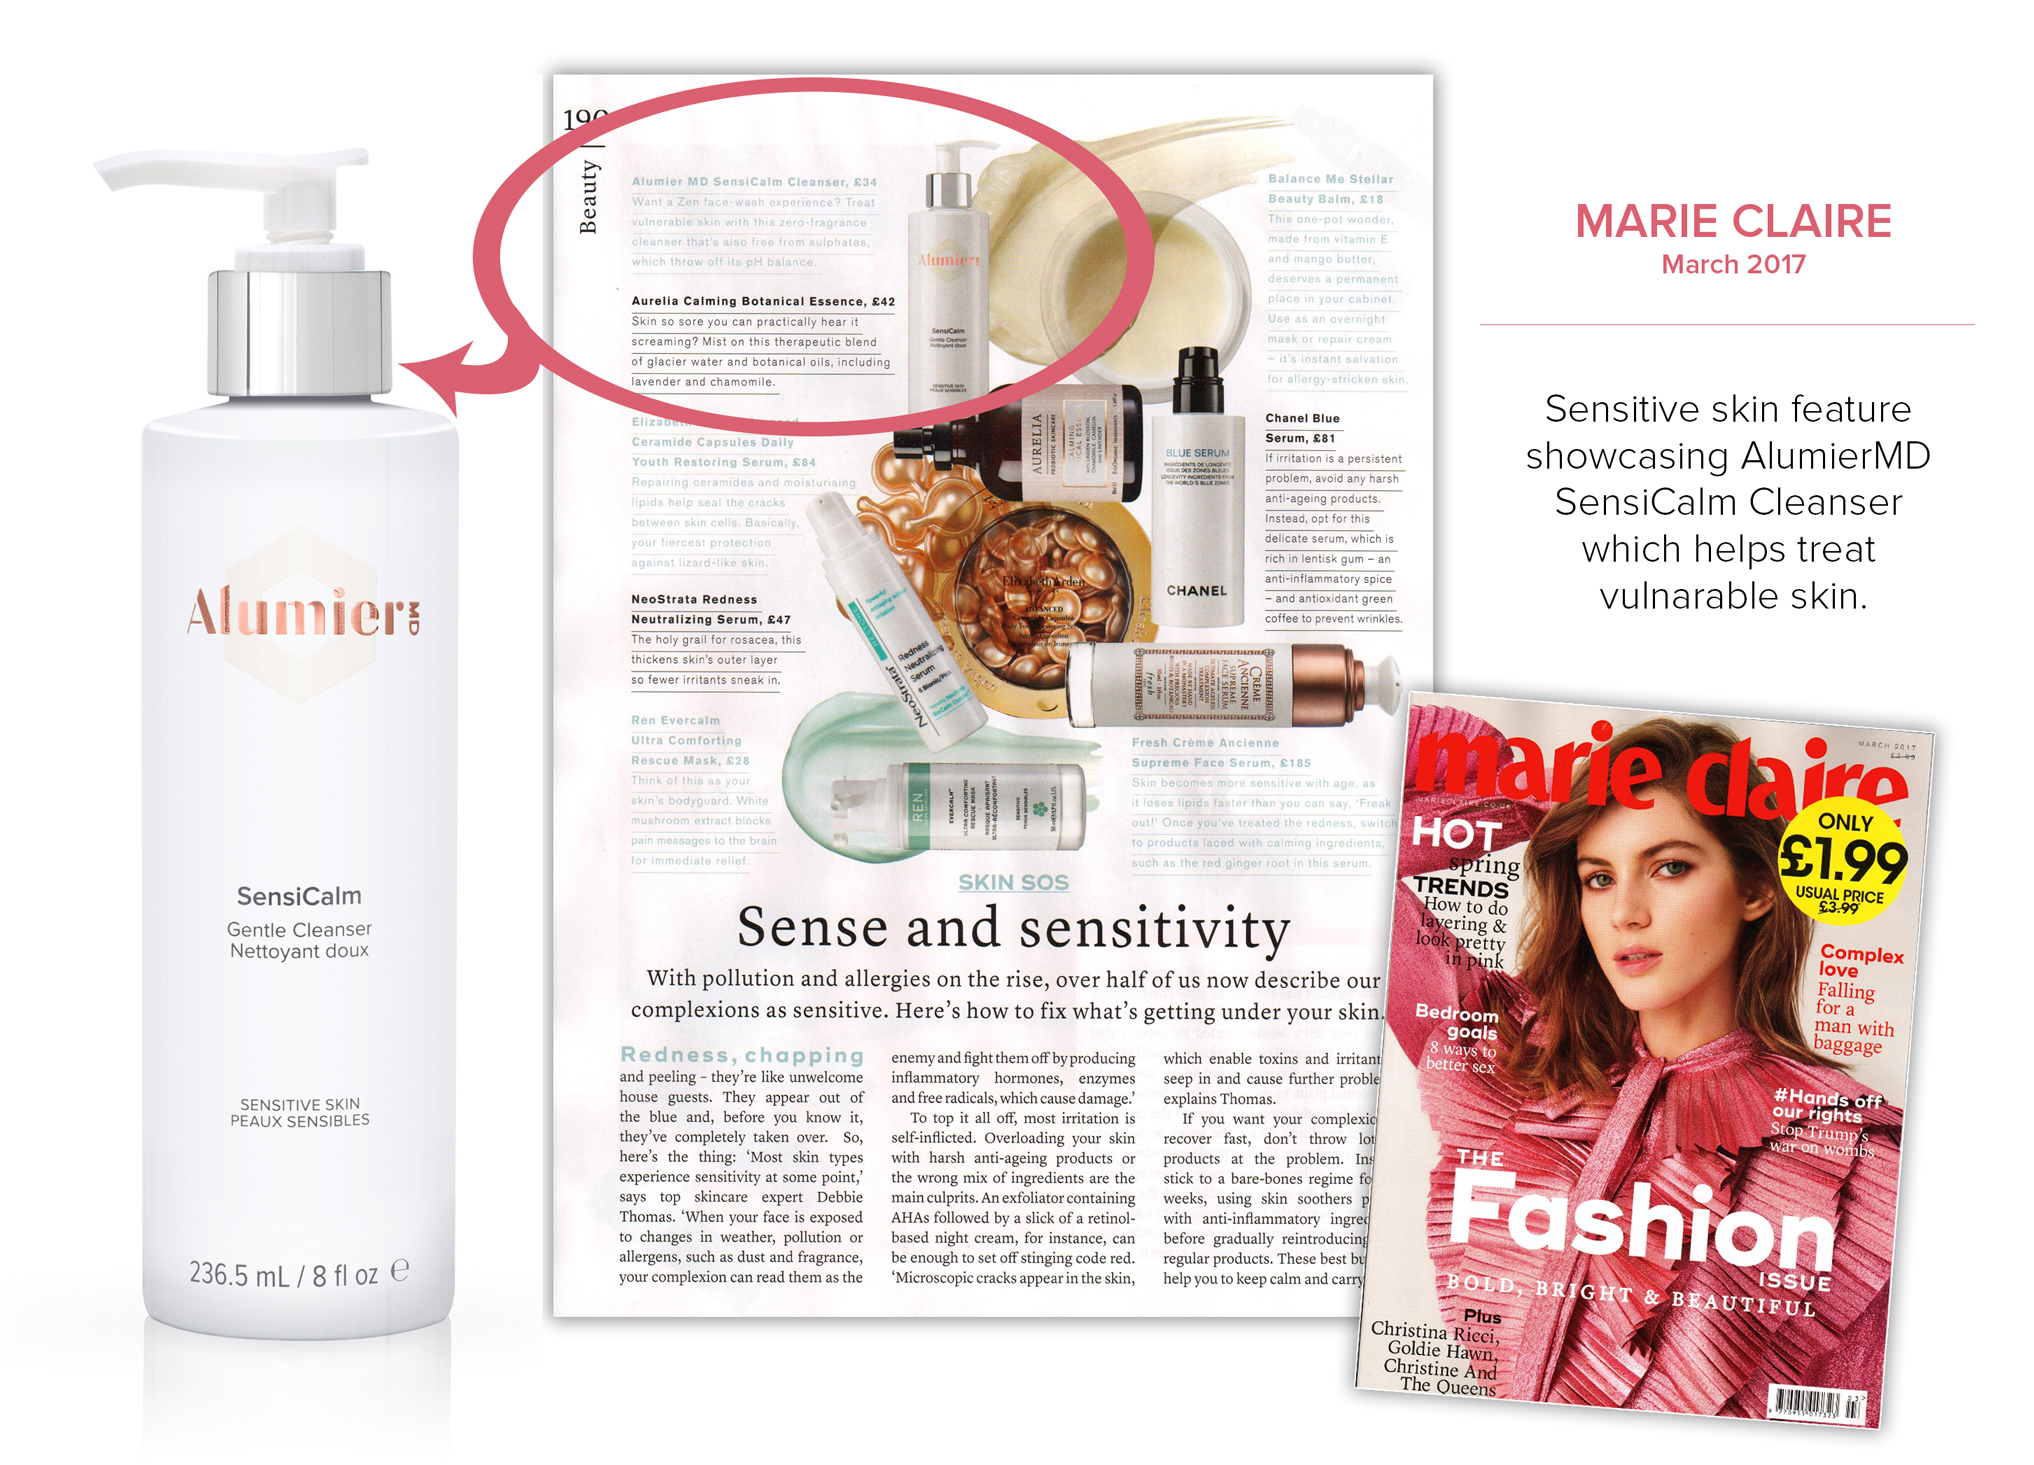 AlumierMD SensiCalm Cleanser pump bottle on magazine article page